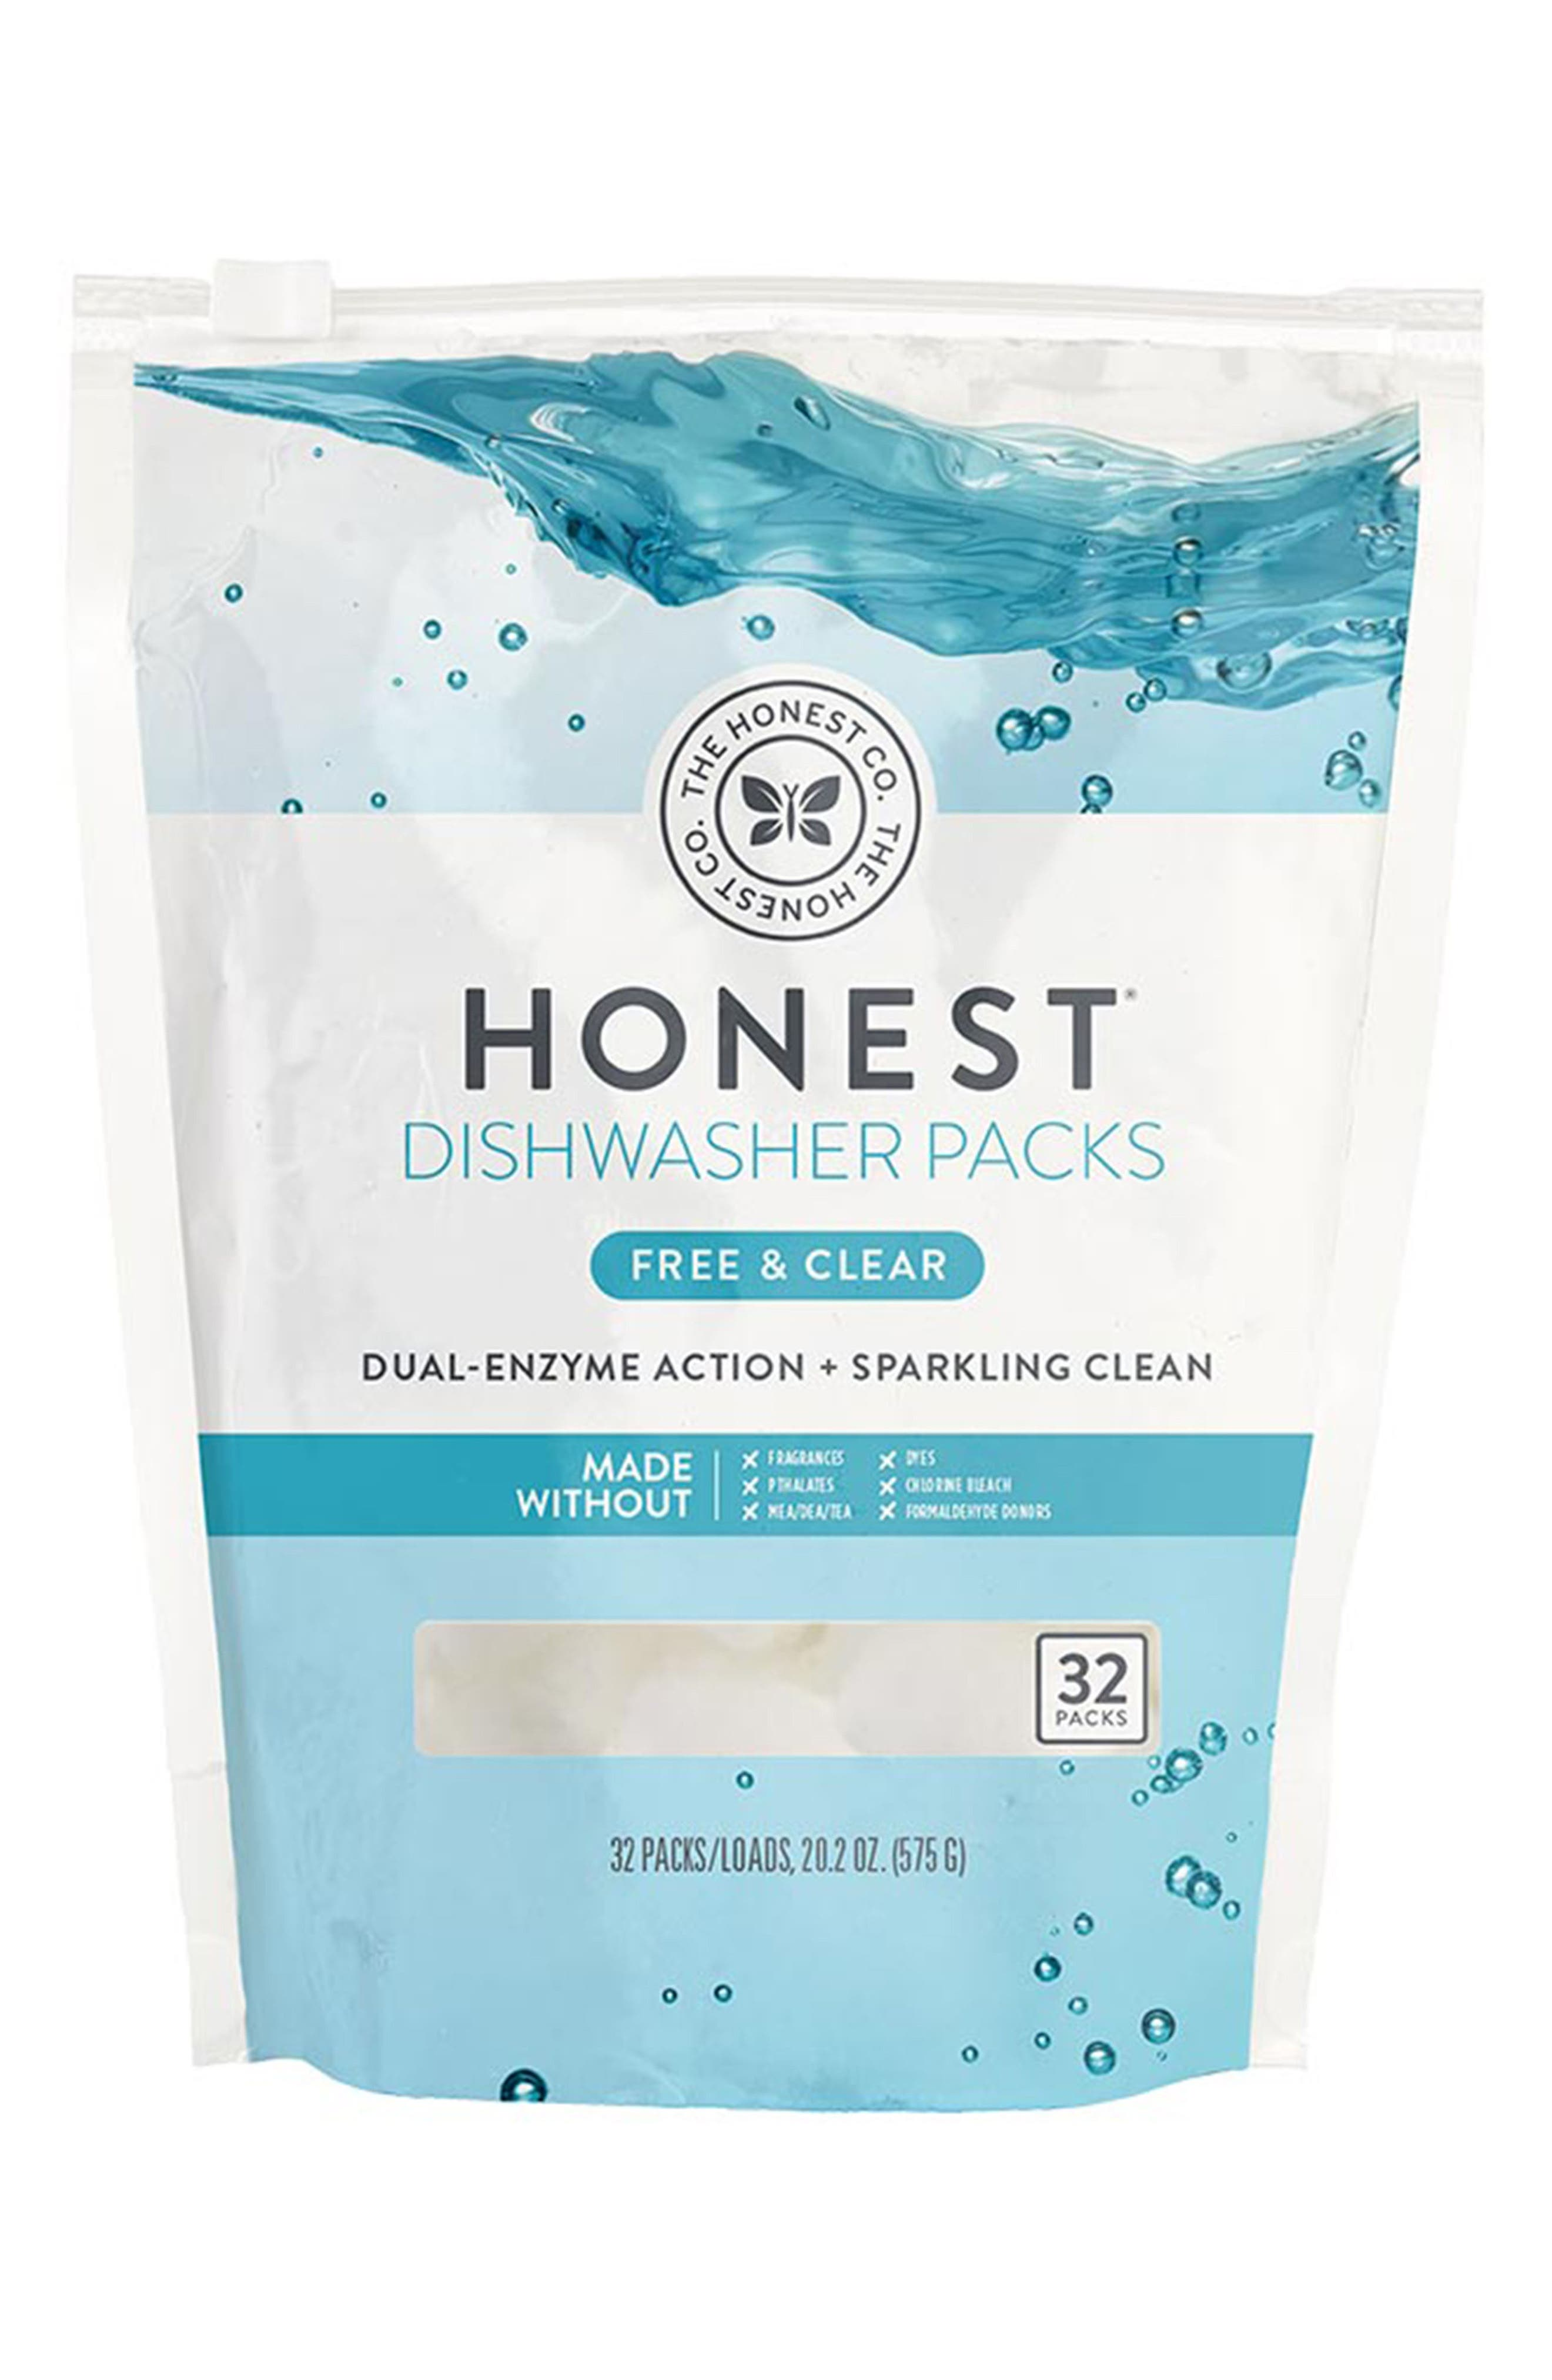 The Honest Company Free & Clear Dishwasher Packs